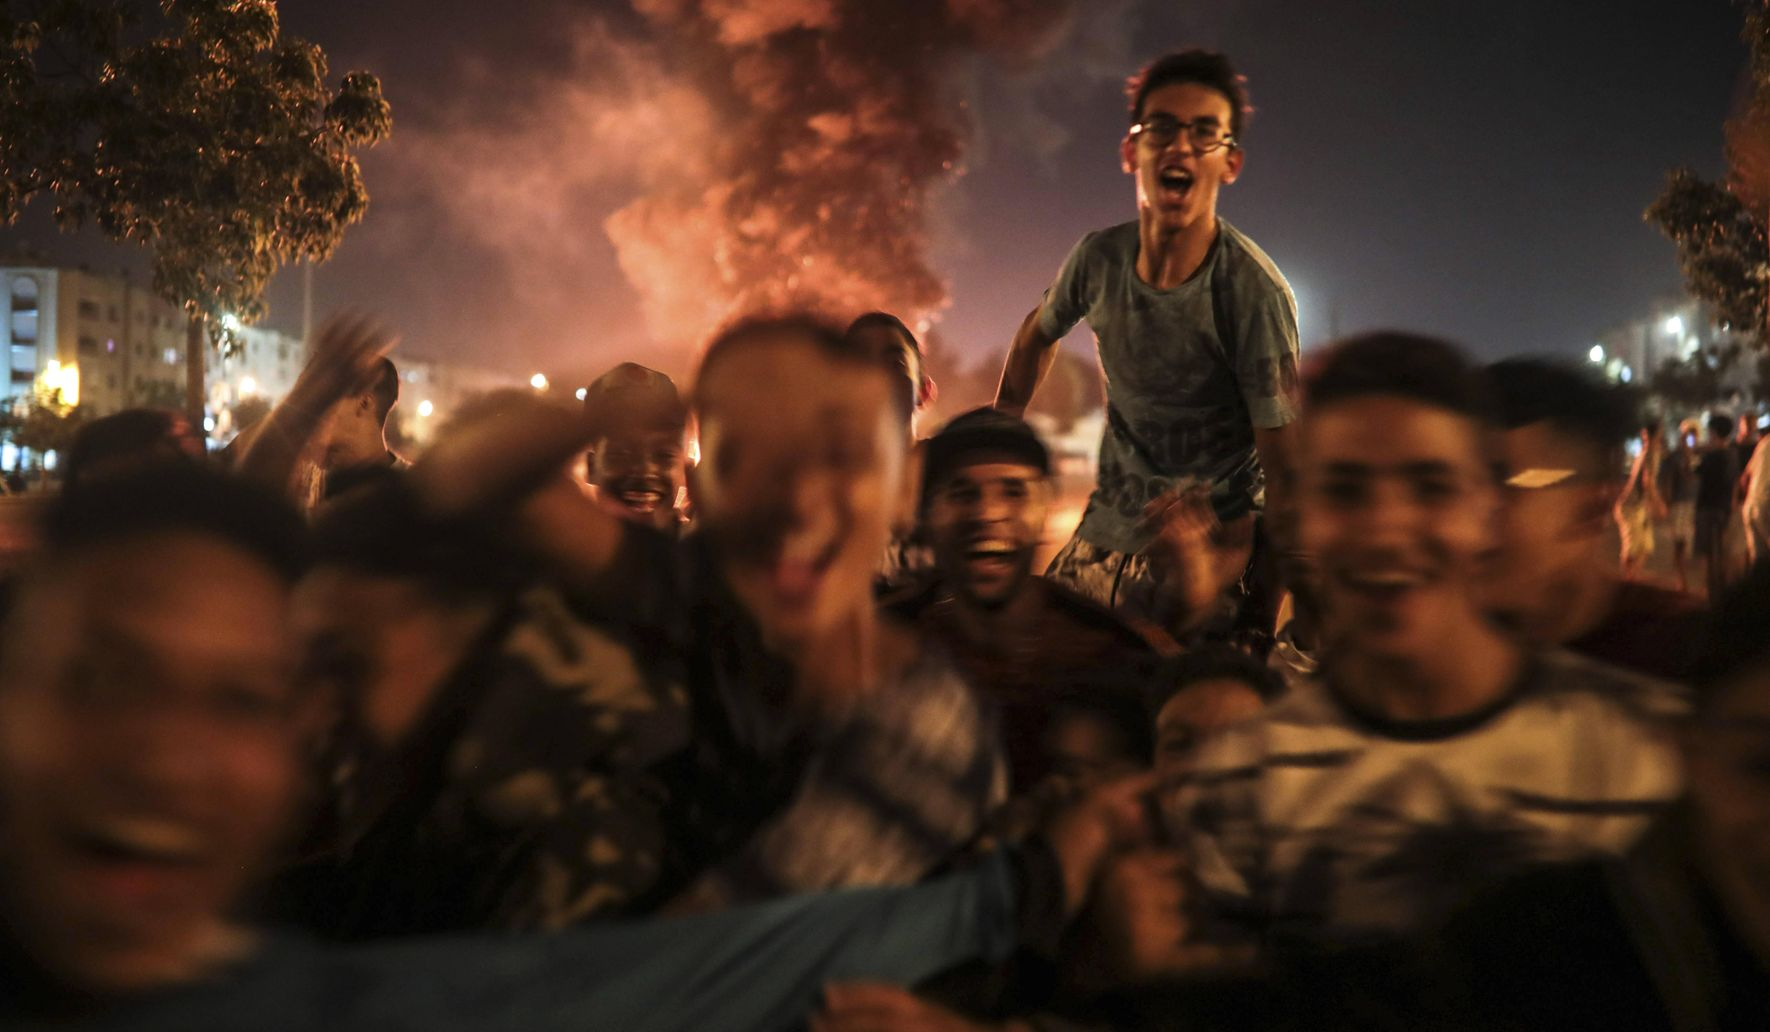 AP PHOTOS: Moroccans feast, light up sky on Shiite holy day